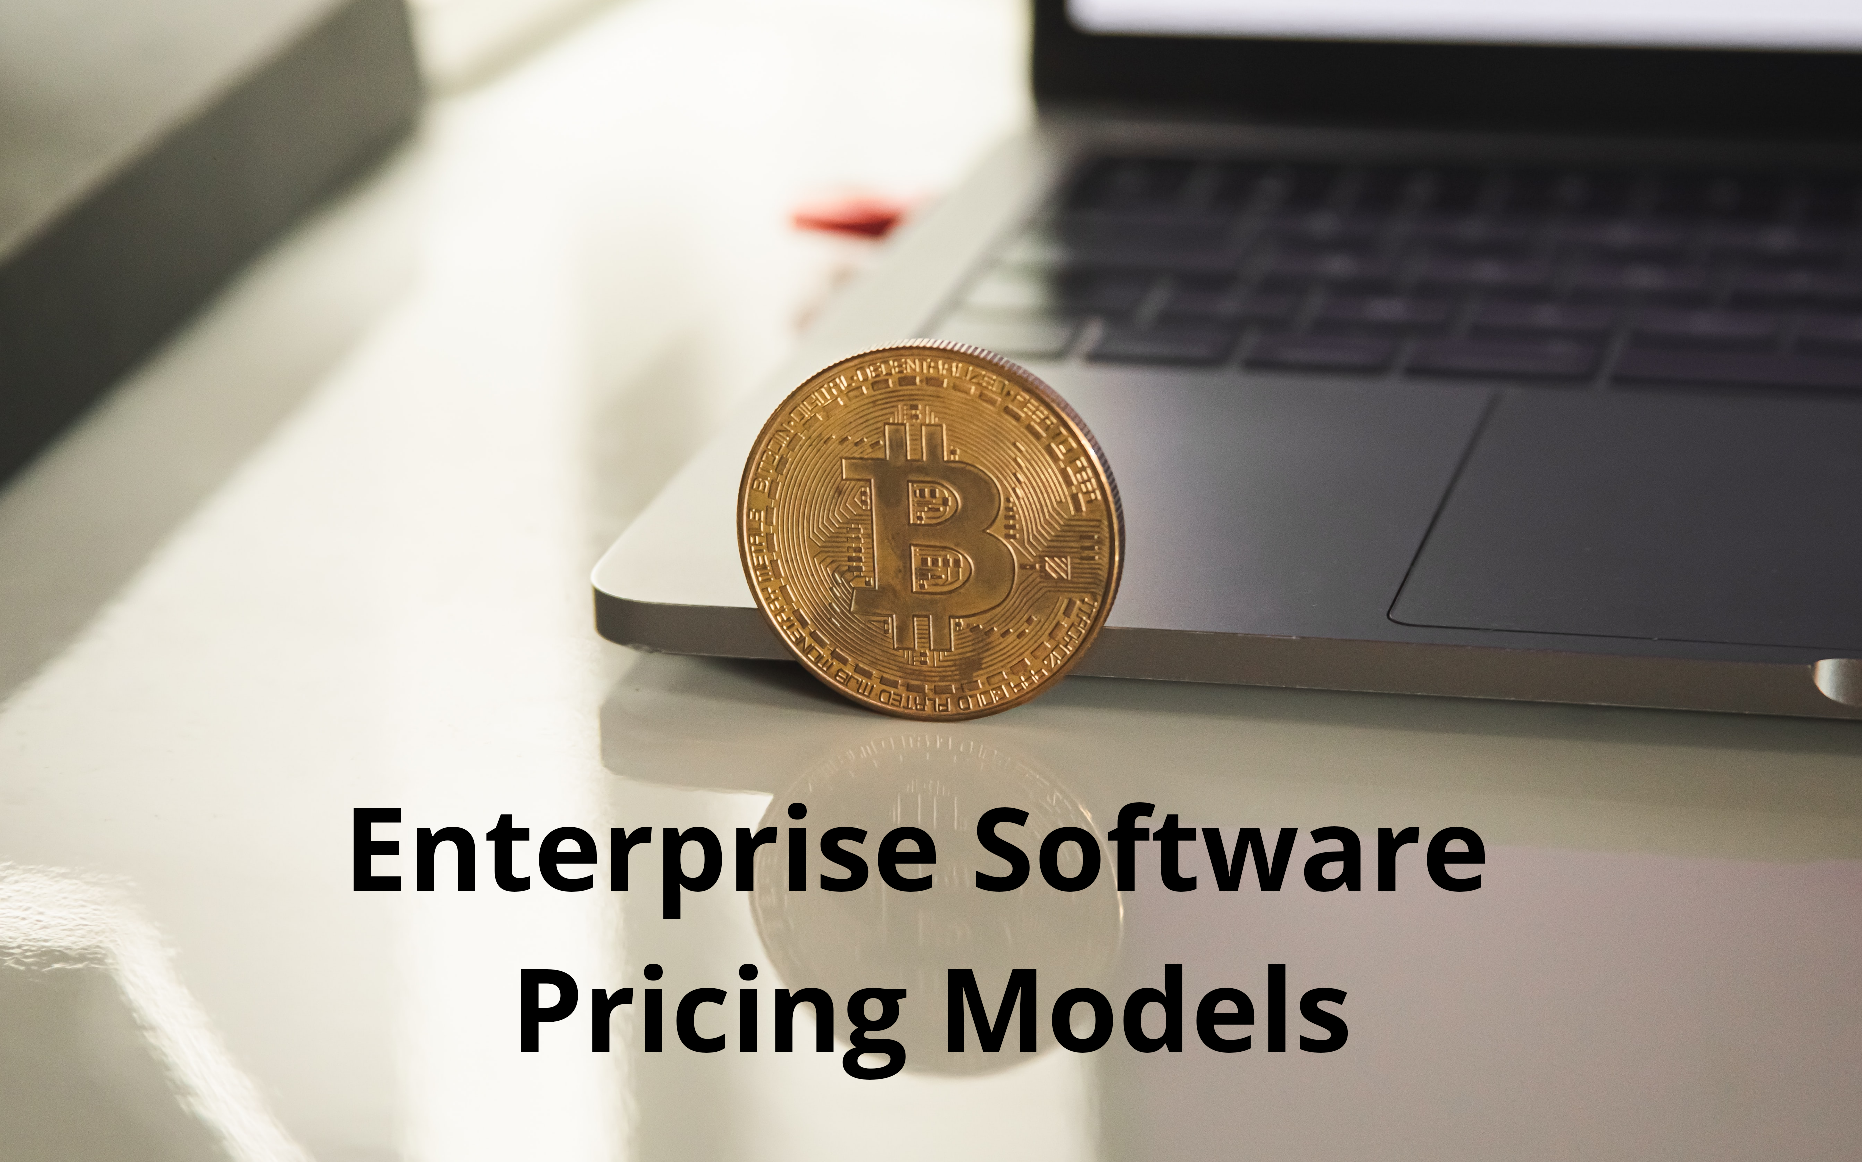 Enterprise Software Pricing Models And Their Impact on Startups